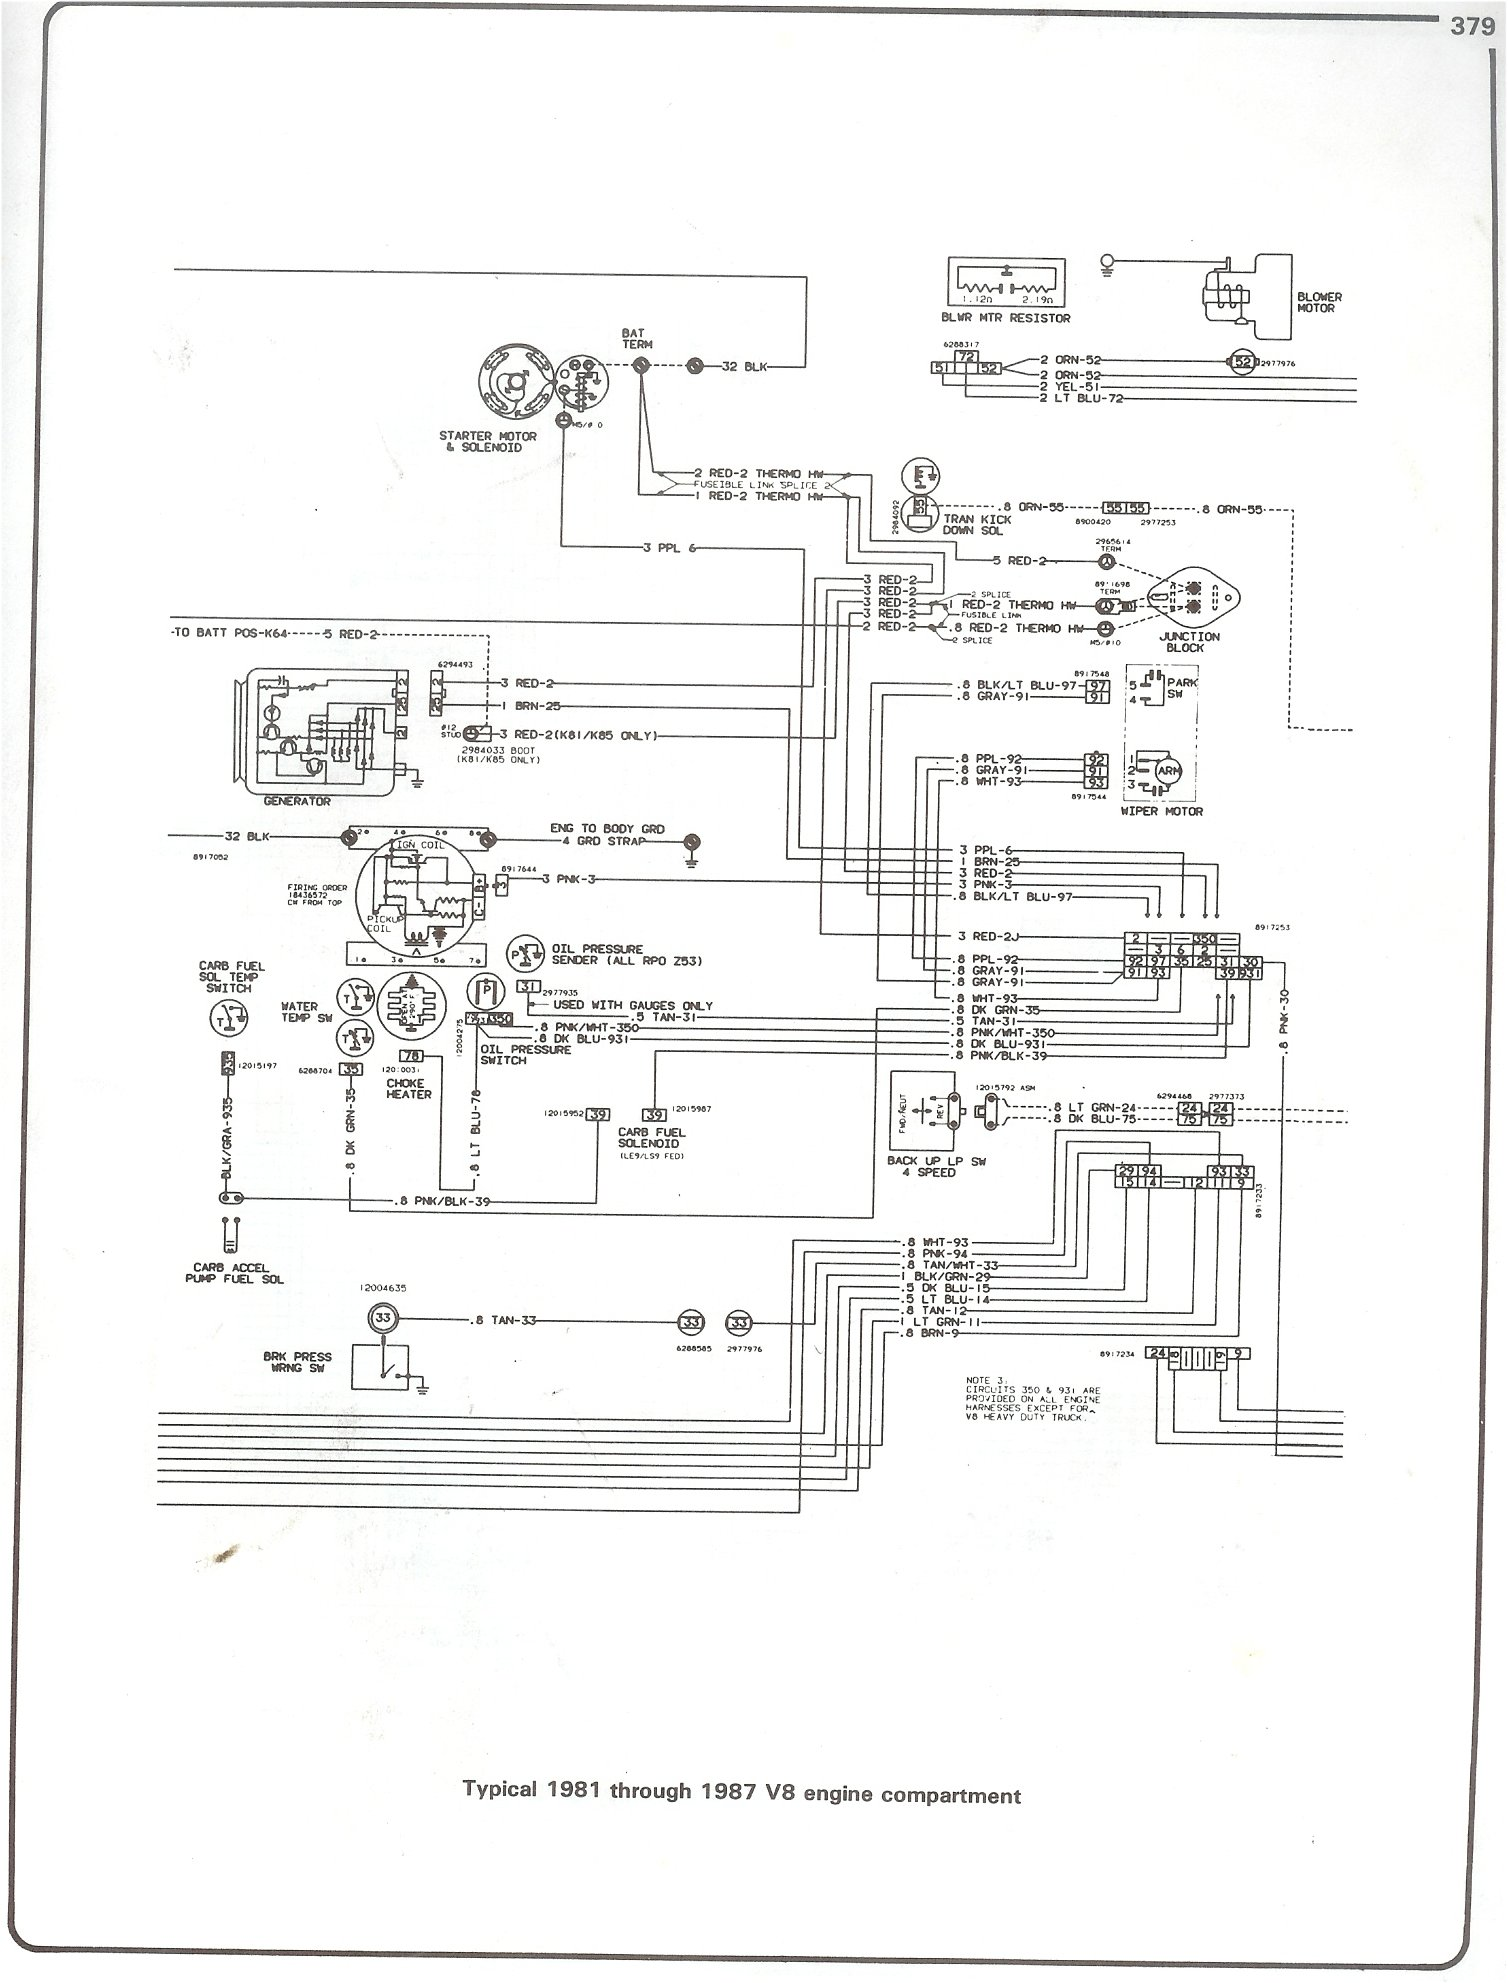 81 87_V8_engine complete 73 87 wiring diagrams  at readyjetset.co